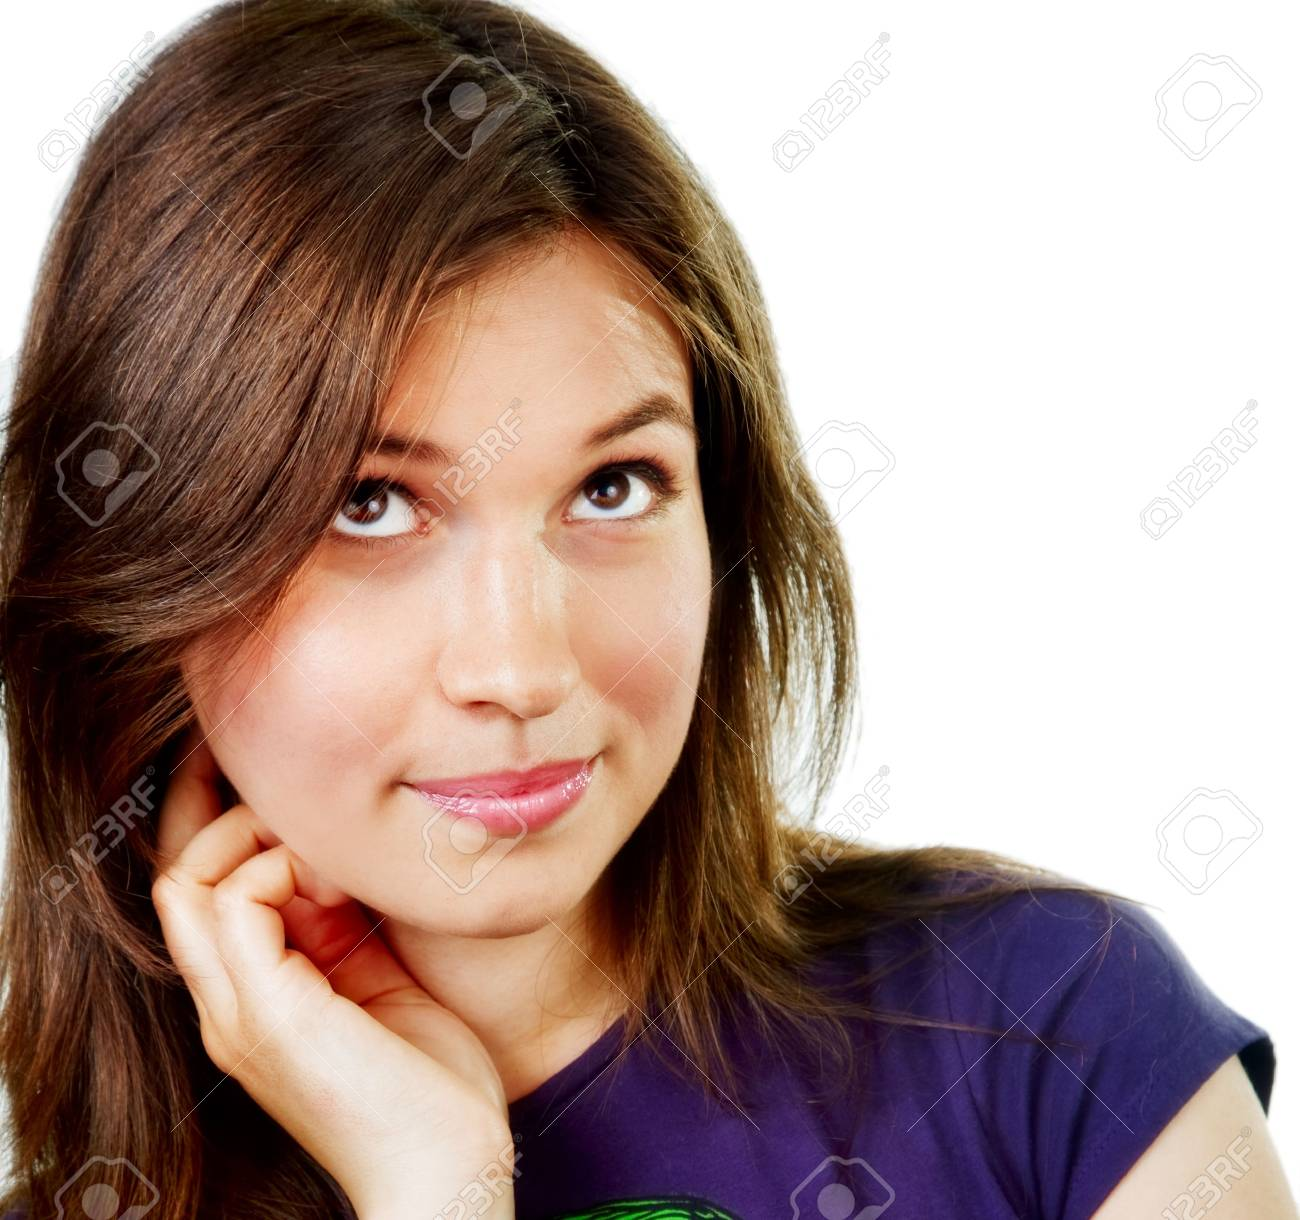 One pensive and creative young woman over white Stock Photo - 5812554